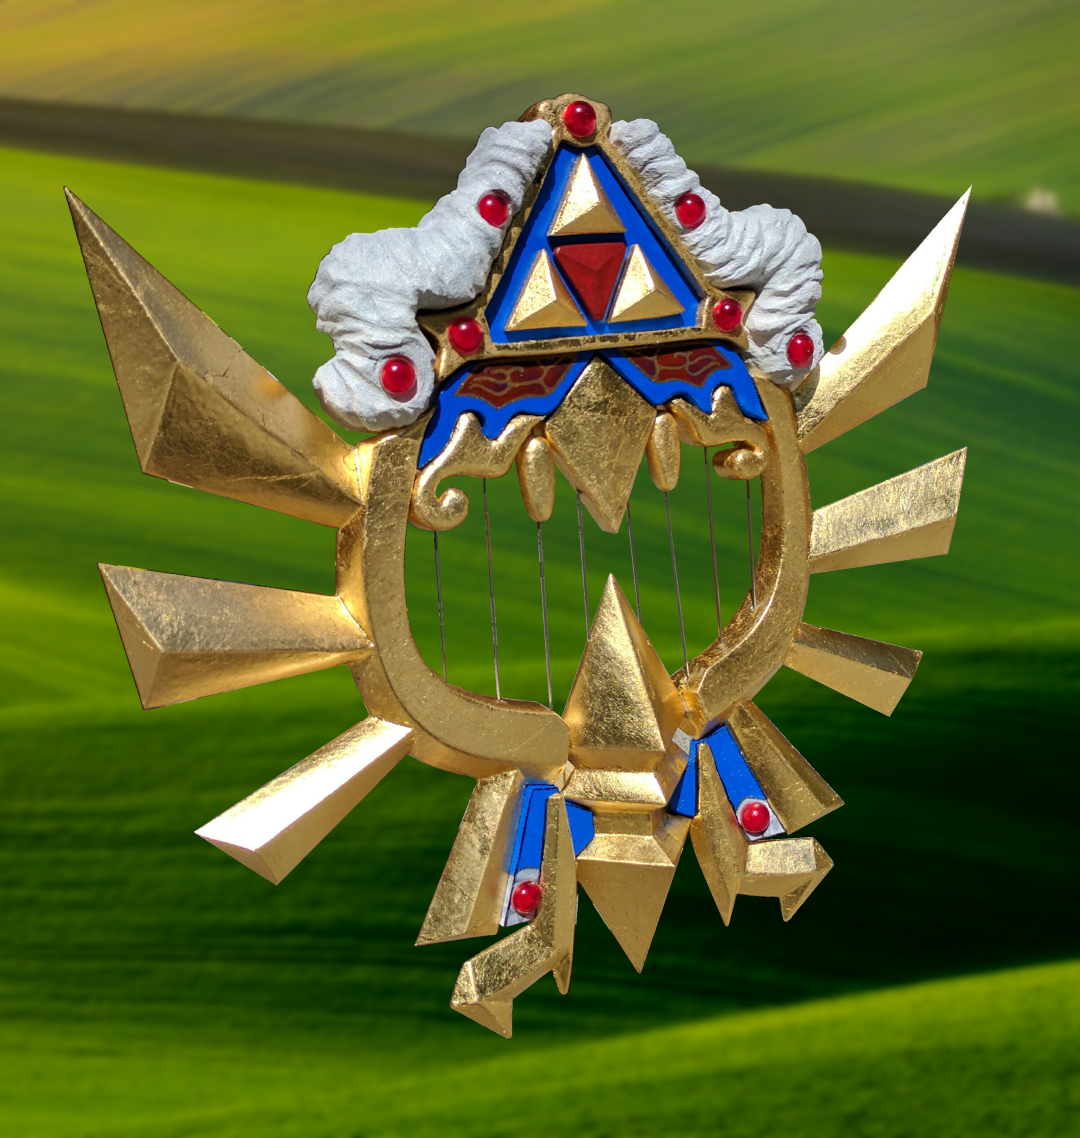 Sheik's Harp, Cosplay Character, Hyrule Warrior, Legend of Zelda